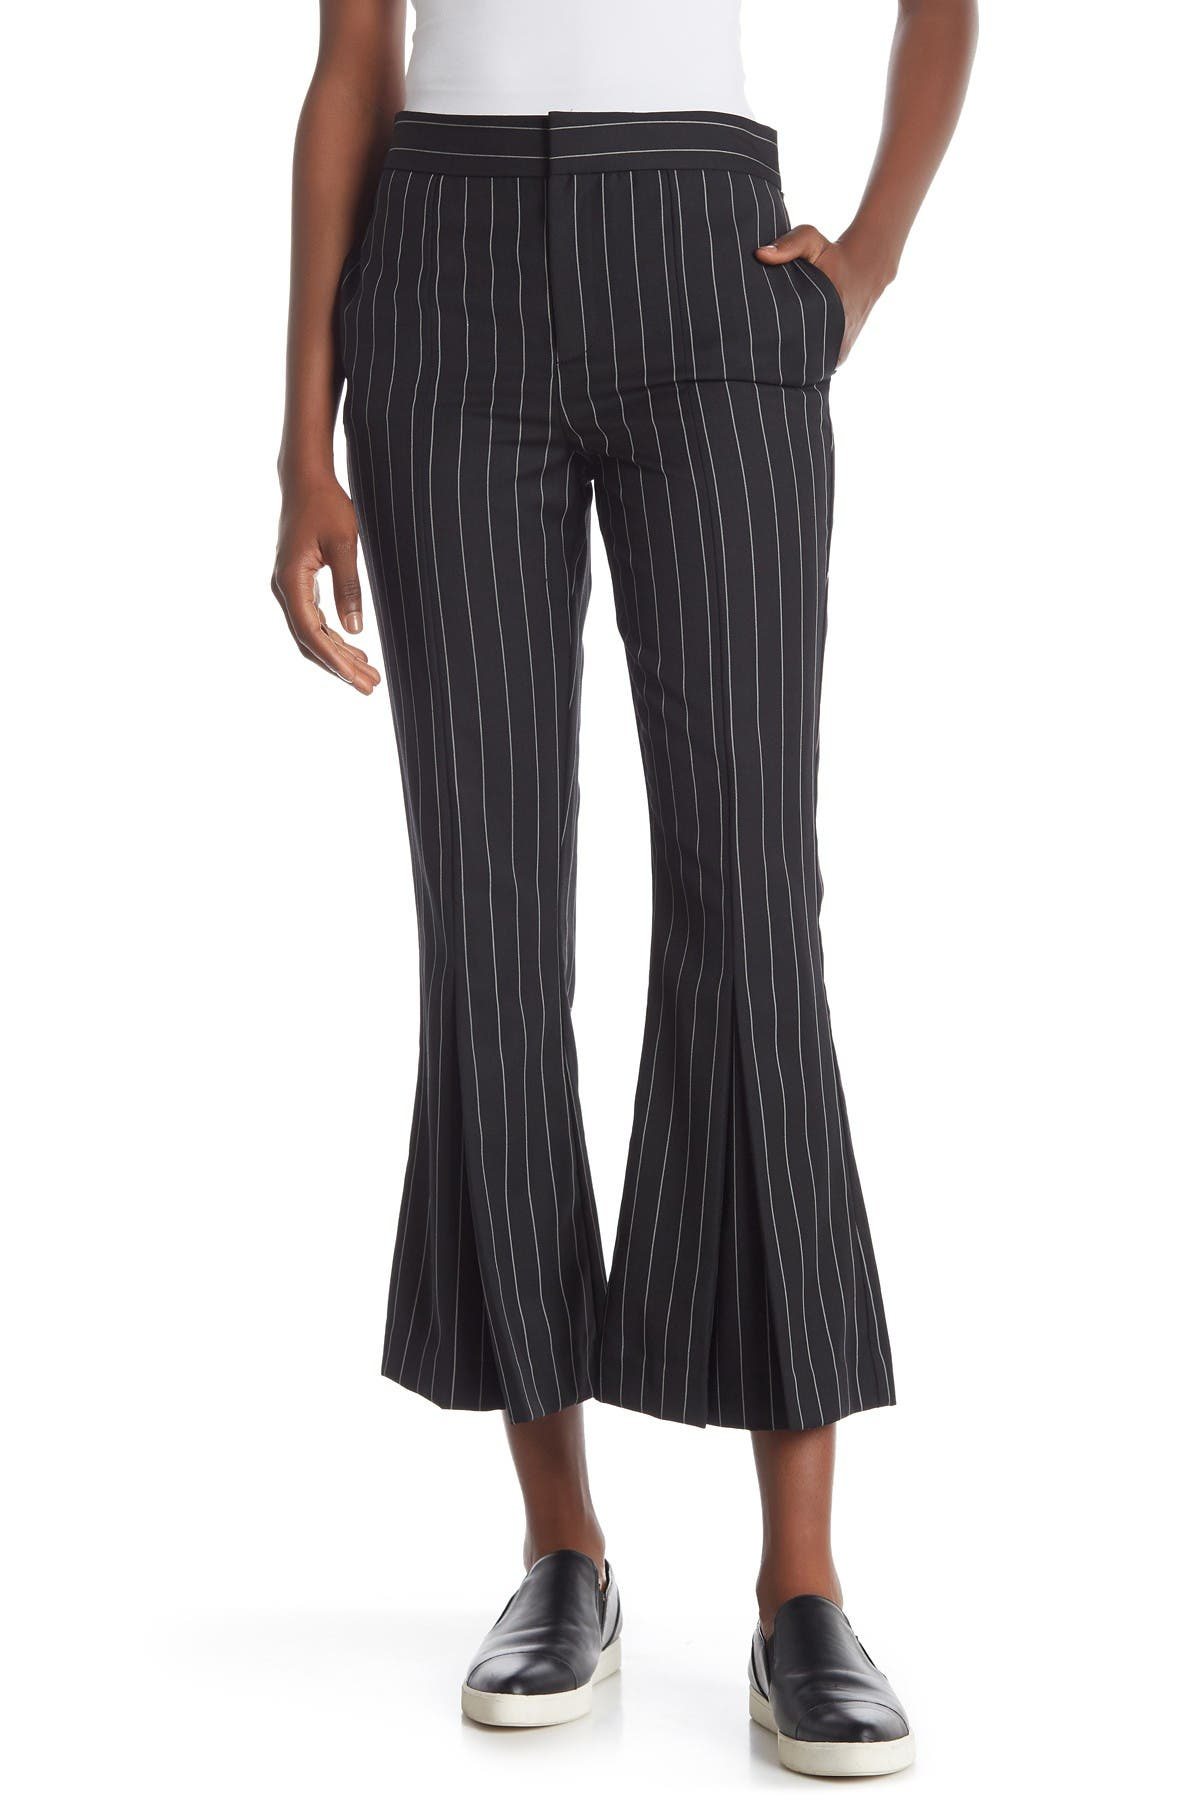 Image of FRAME Striped Pleated Hem Crop Pants